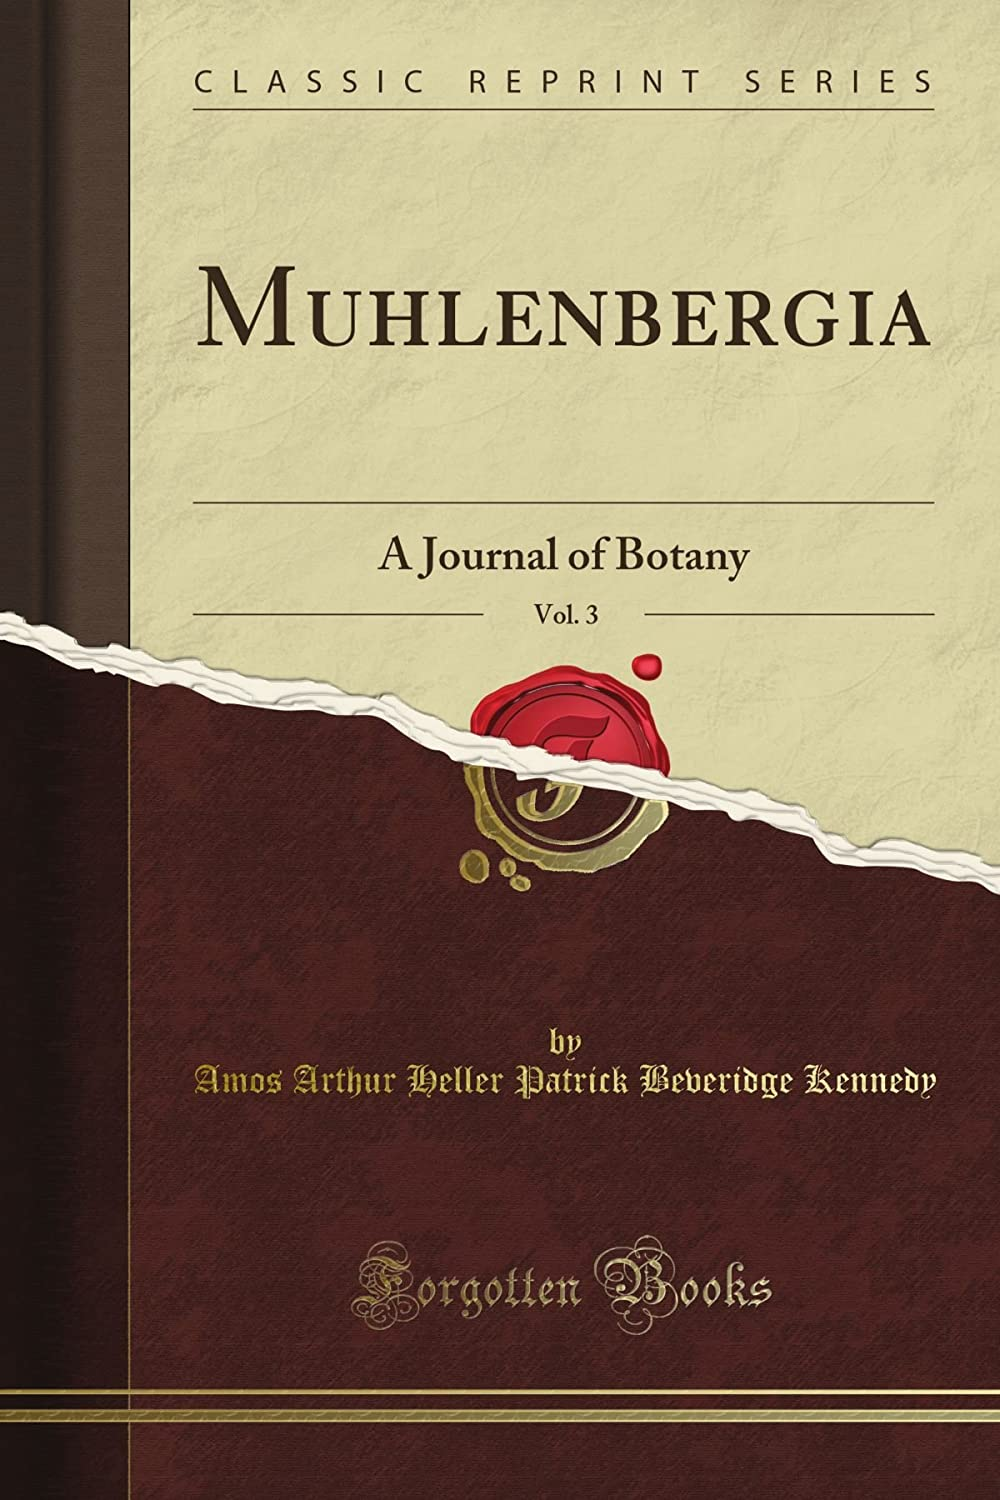 Muhlenbergia: A Journal of Botany, Vol. 3 (Classic Reprint)